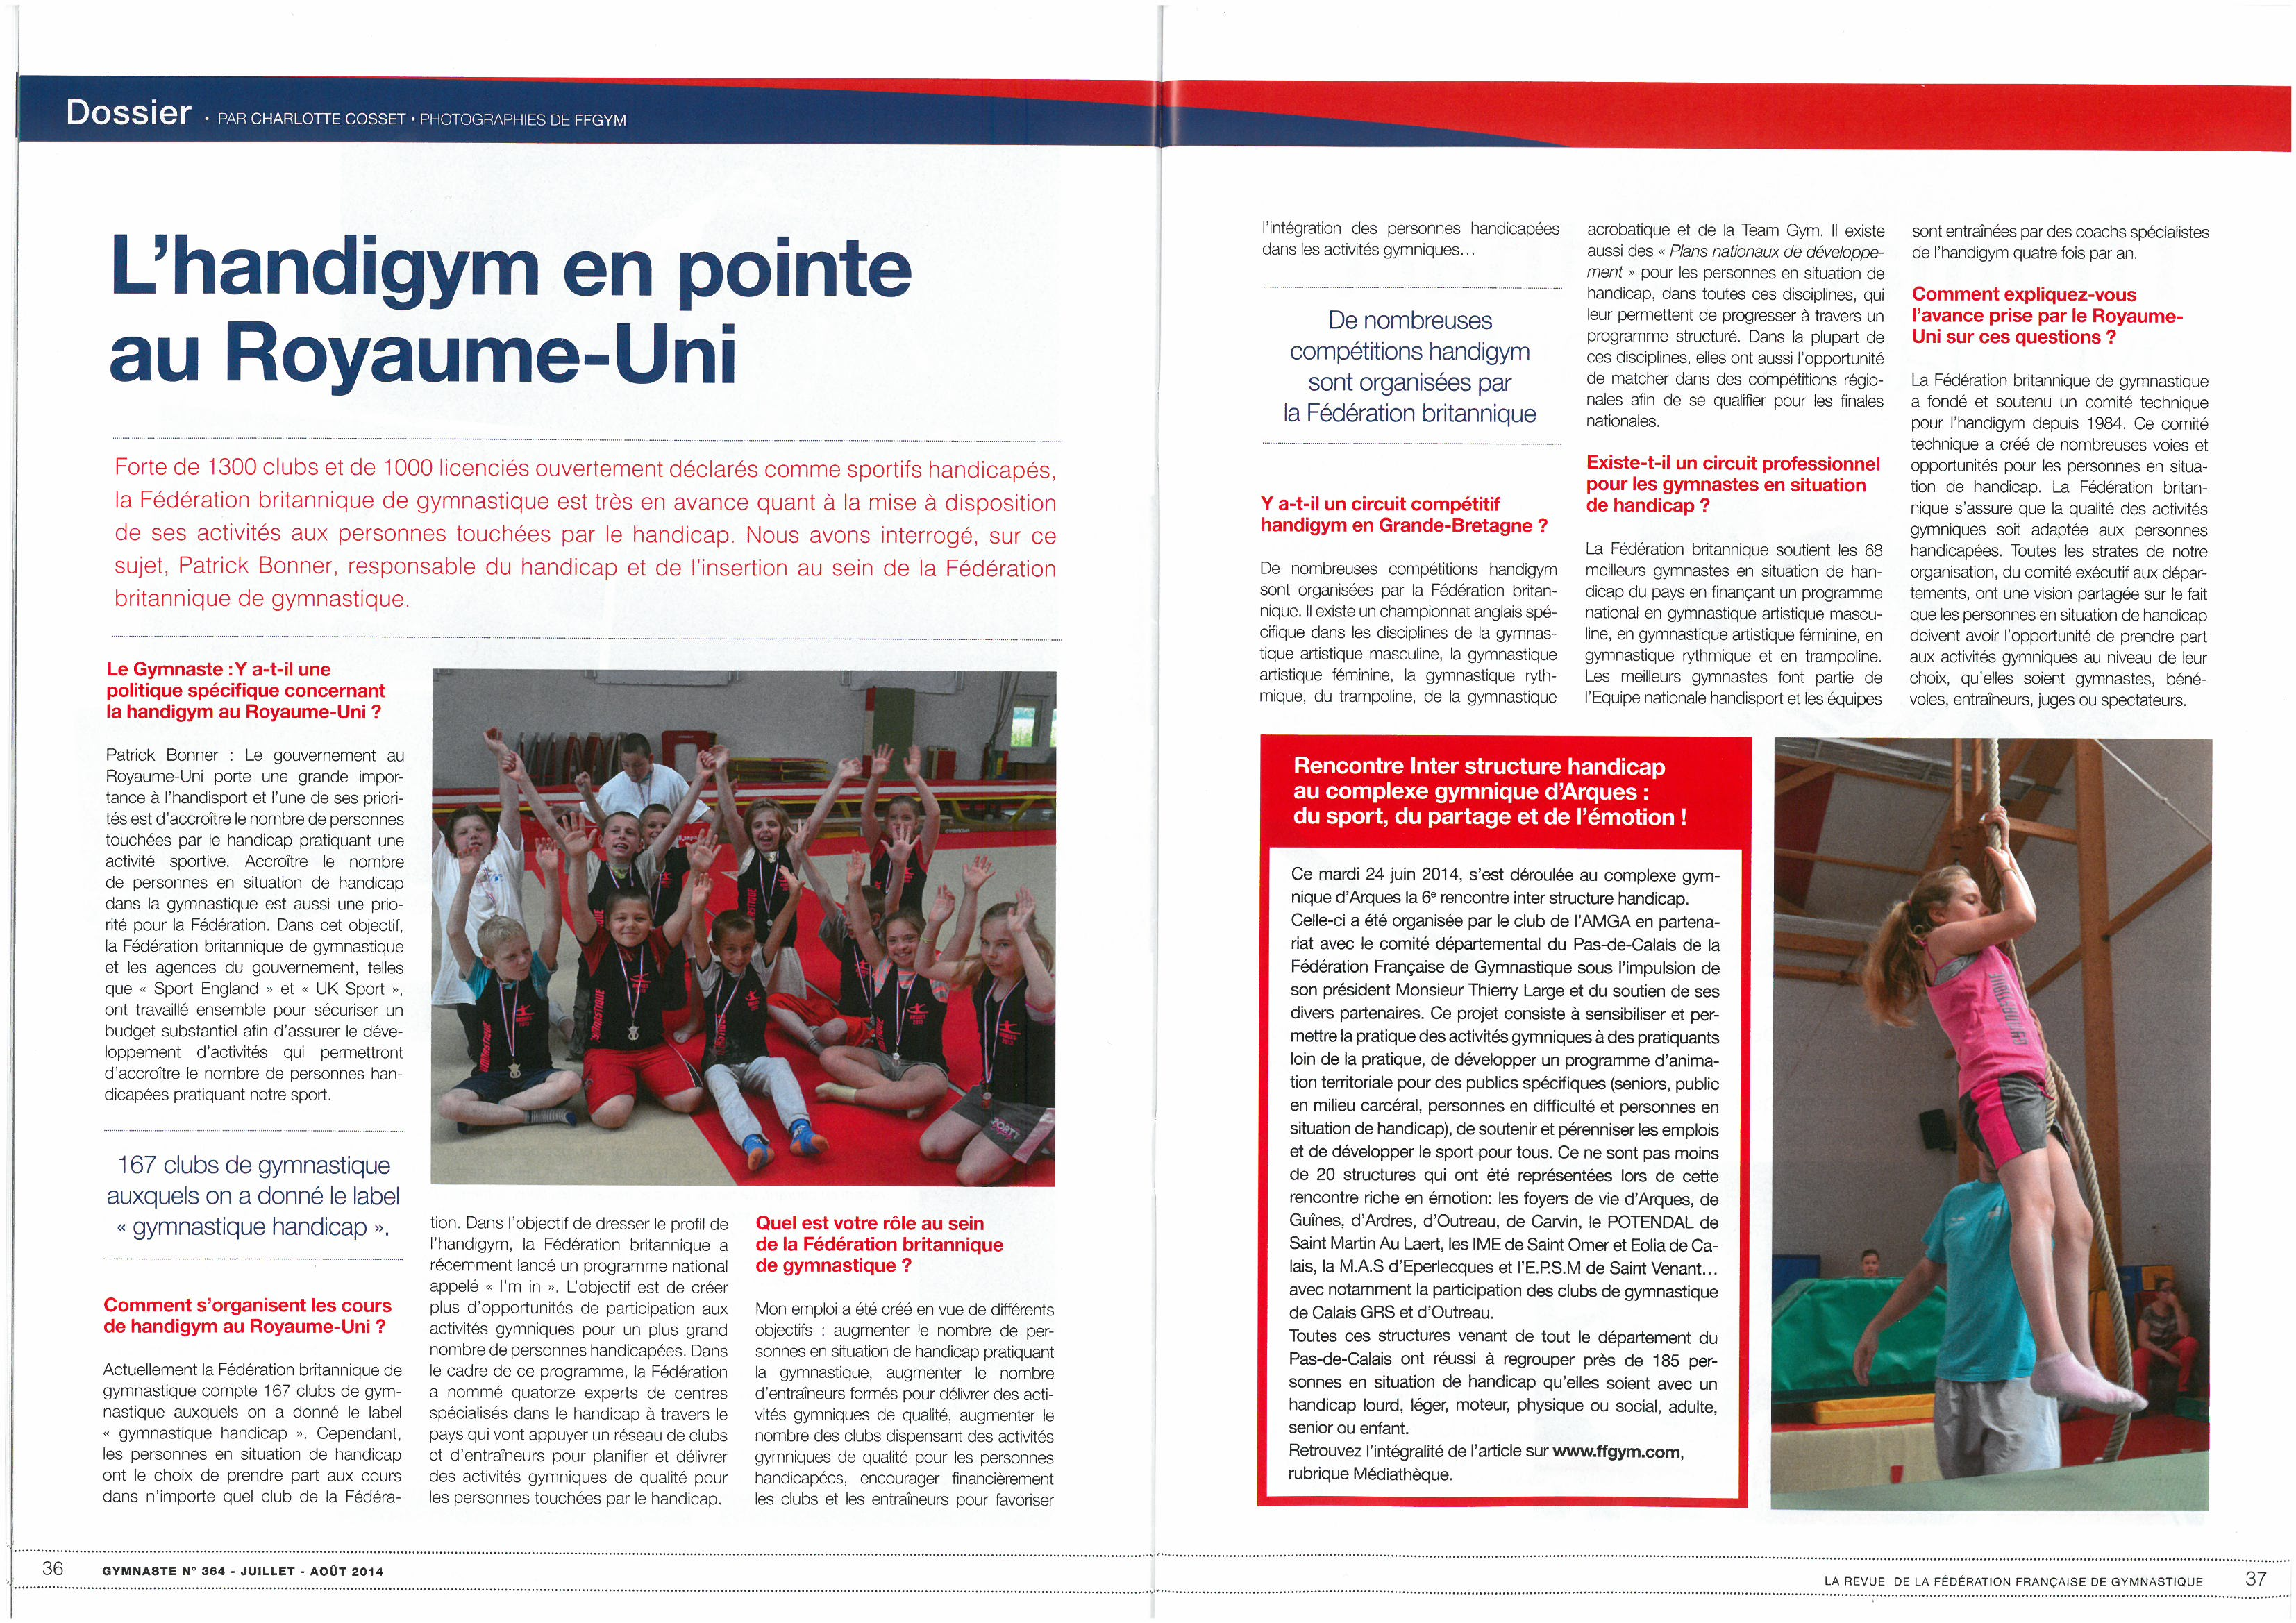 Article Gymnaste Magazine Rencontre Interhandicap